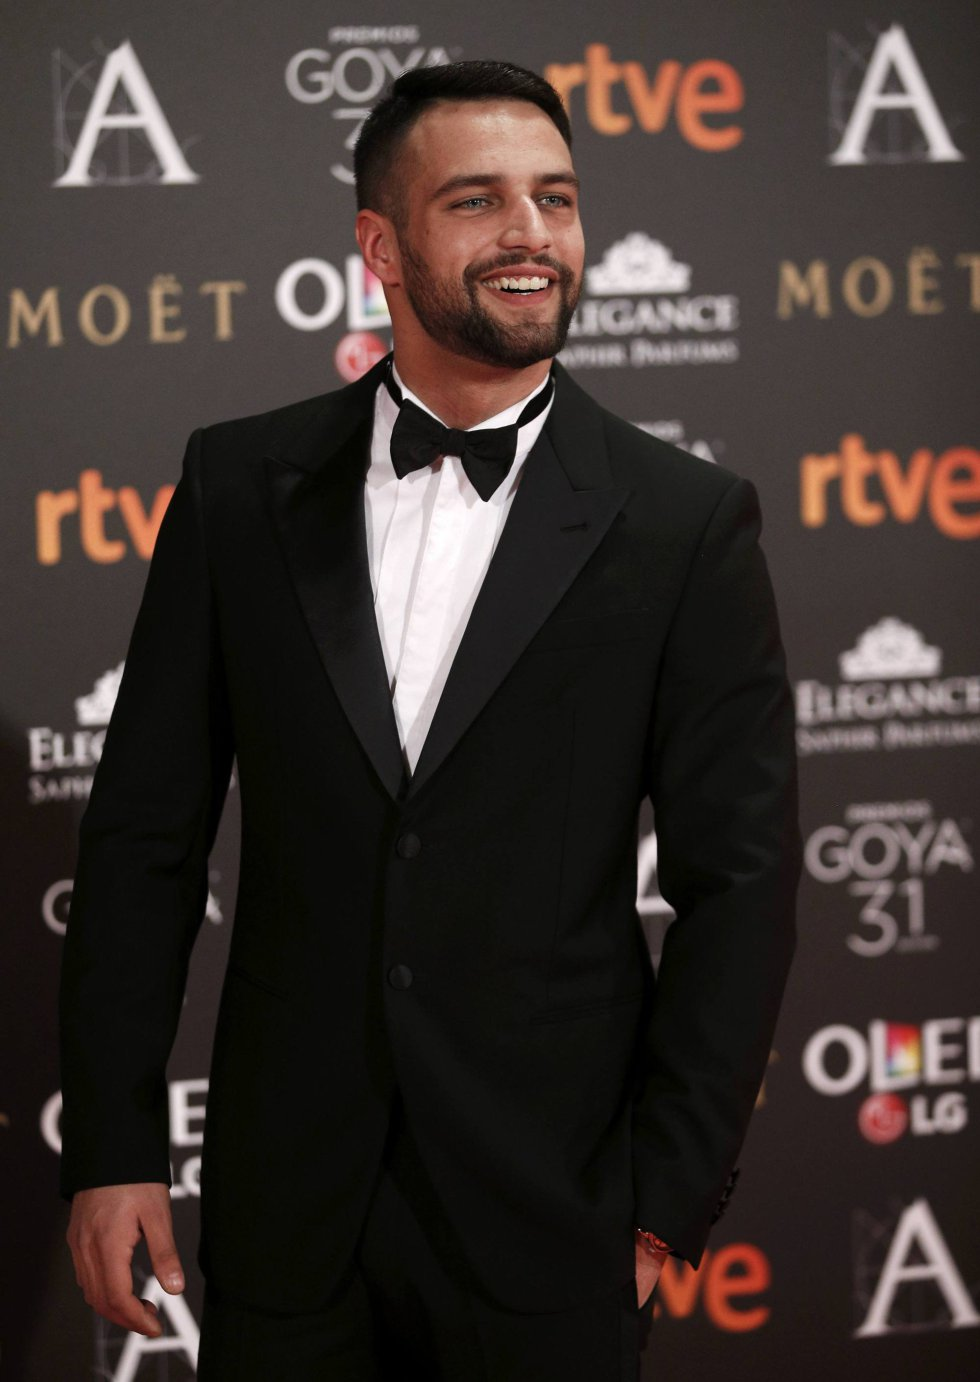 El actor Jesus Castro